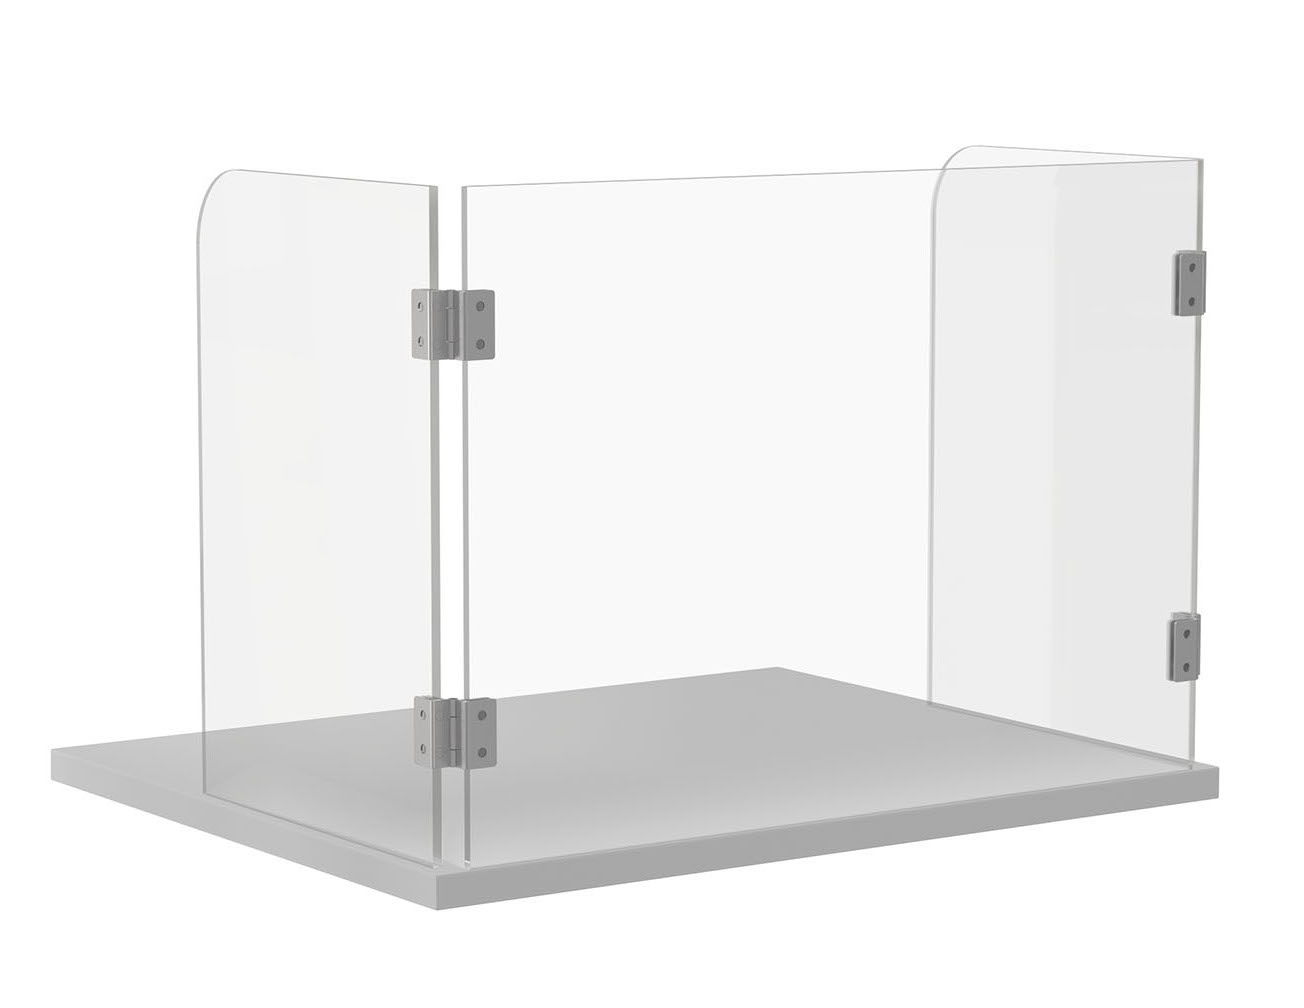 folding executive screen with metal hinges